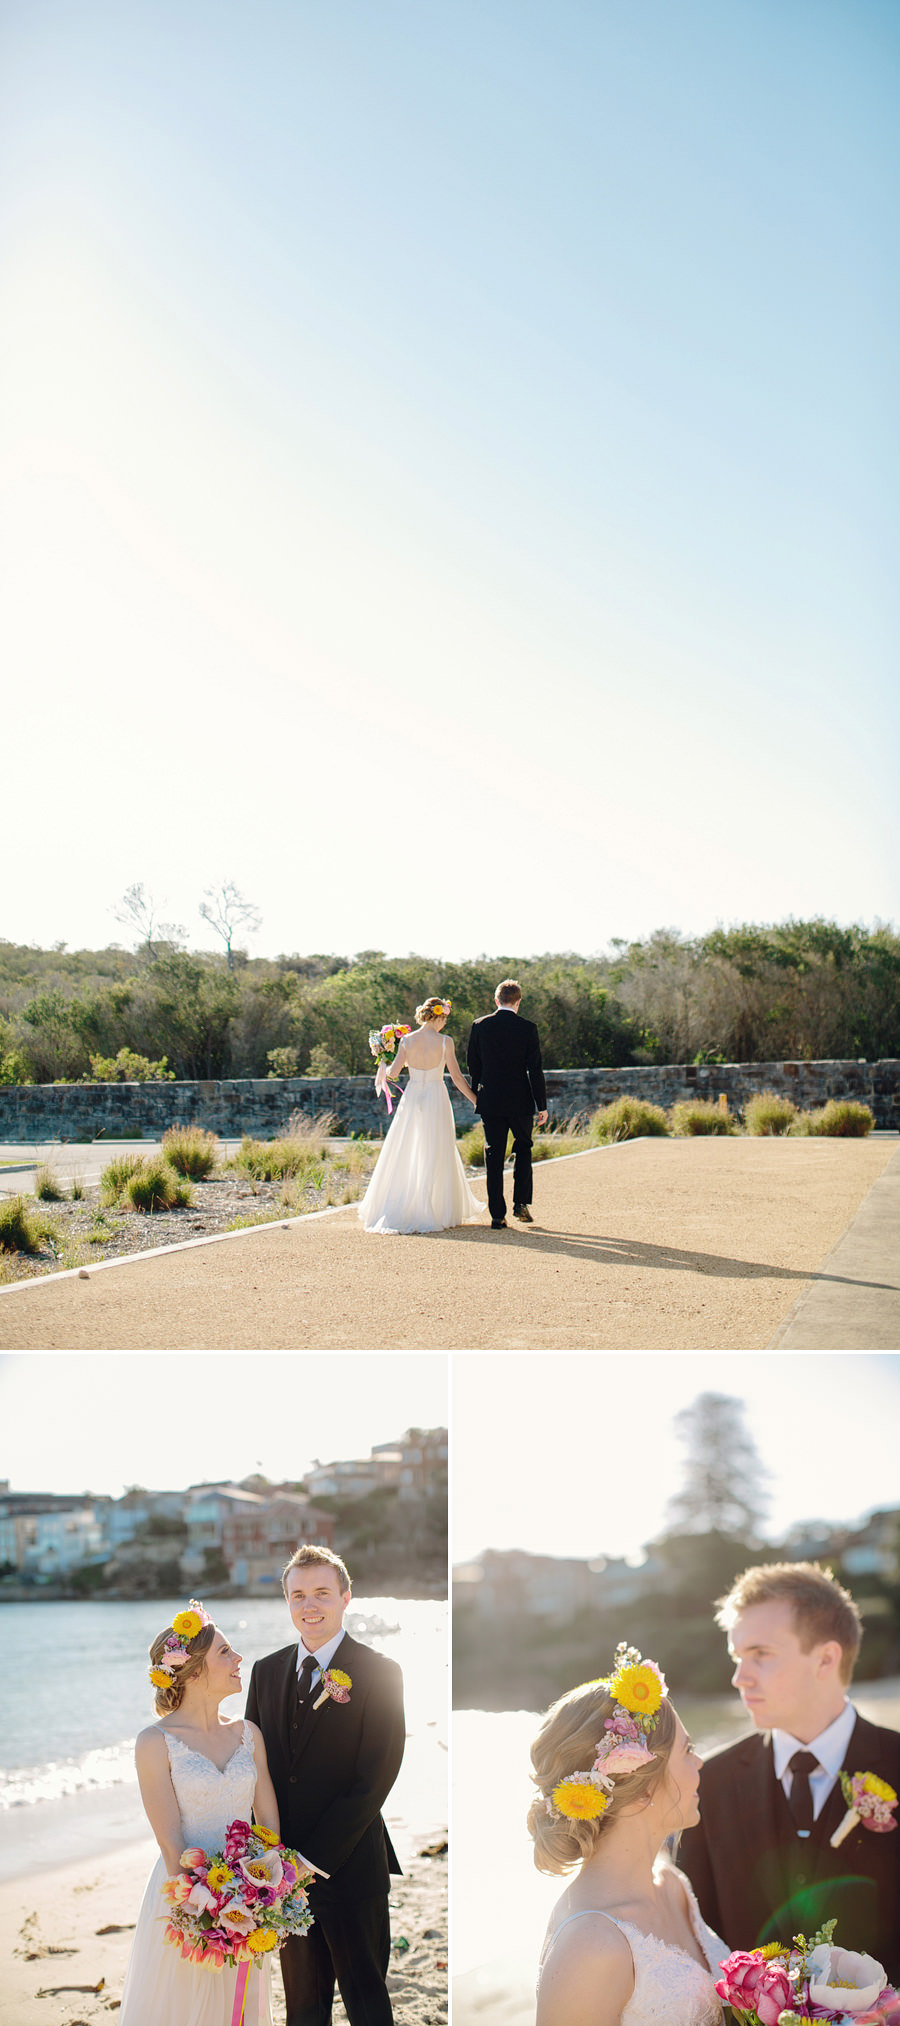 Little Manly Wedding Photographer: Bridal Party Portraits